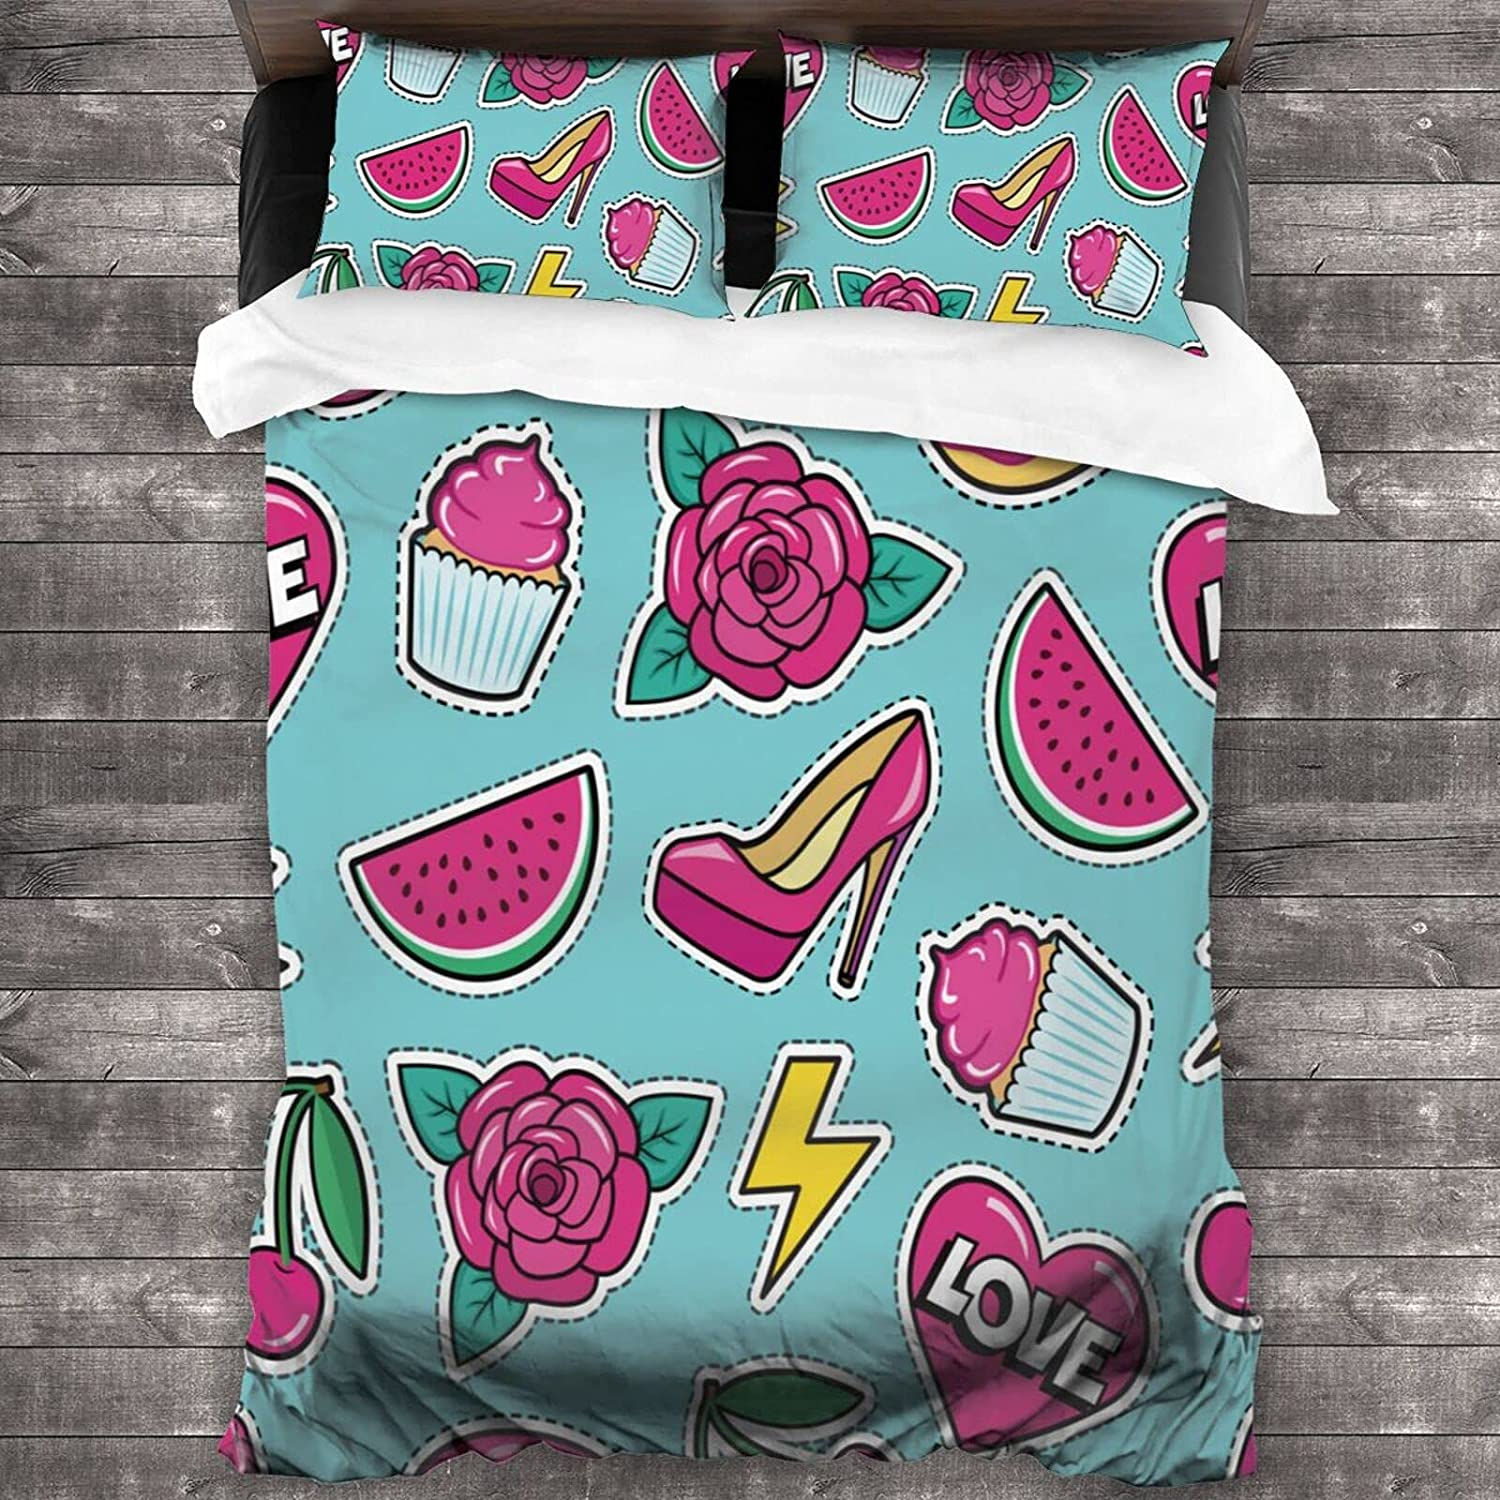 SUPNON Tucson Mall Don't miss the campaign 3 Piece Quilts Pillow Sets Col Cute Seamless with Pattern